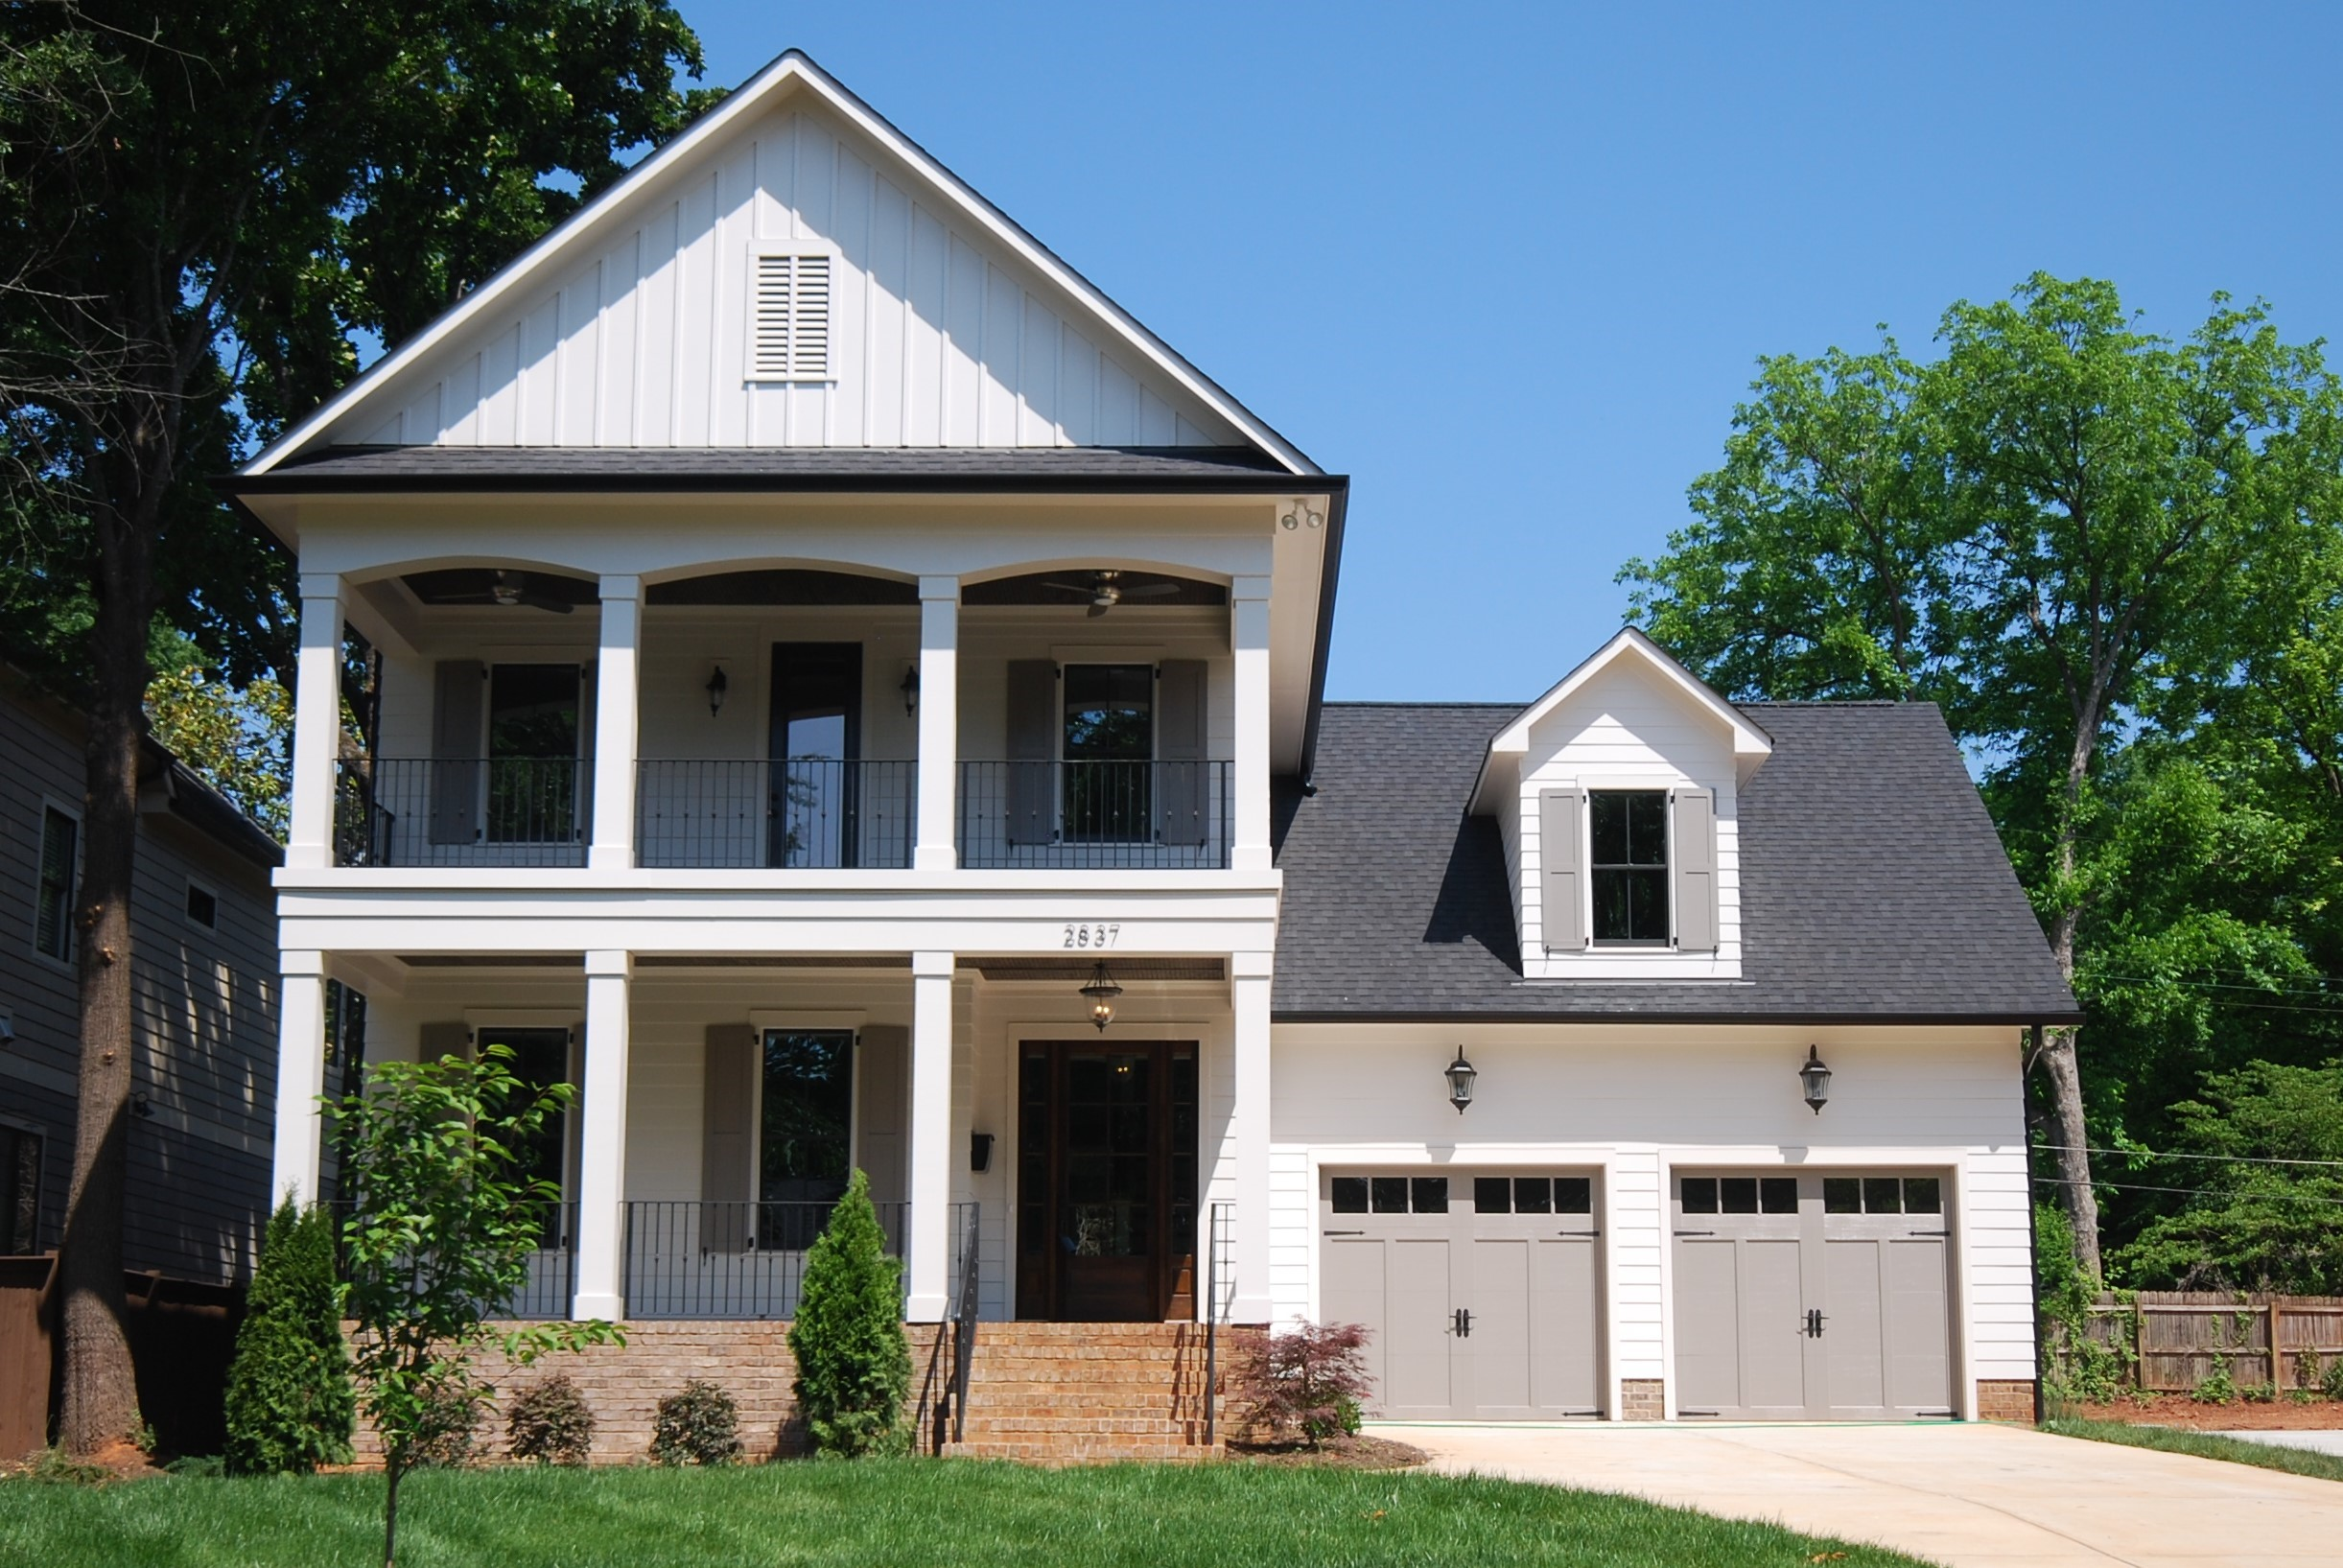 UNDER CONTRACT: New Construction in Midwood. Charleston-Style 5 Bedroom/3.5 Bath + Garage